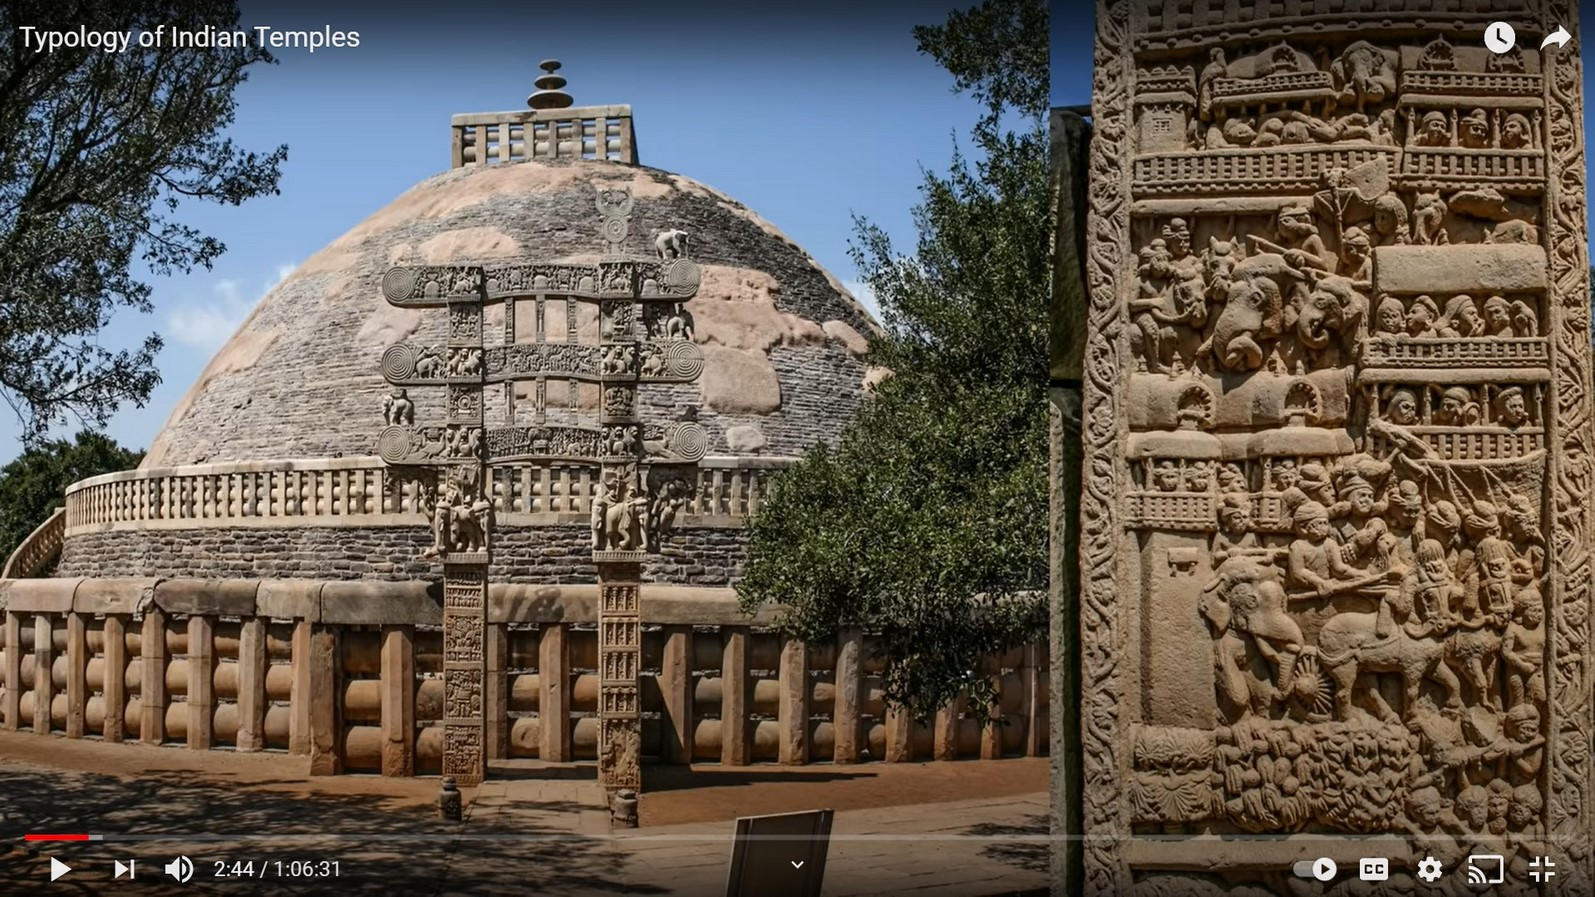 Youtube for Architects: Typology of Indian Temples by Adam Hardy Indian Temple Architecture - Sheet2